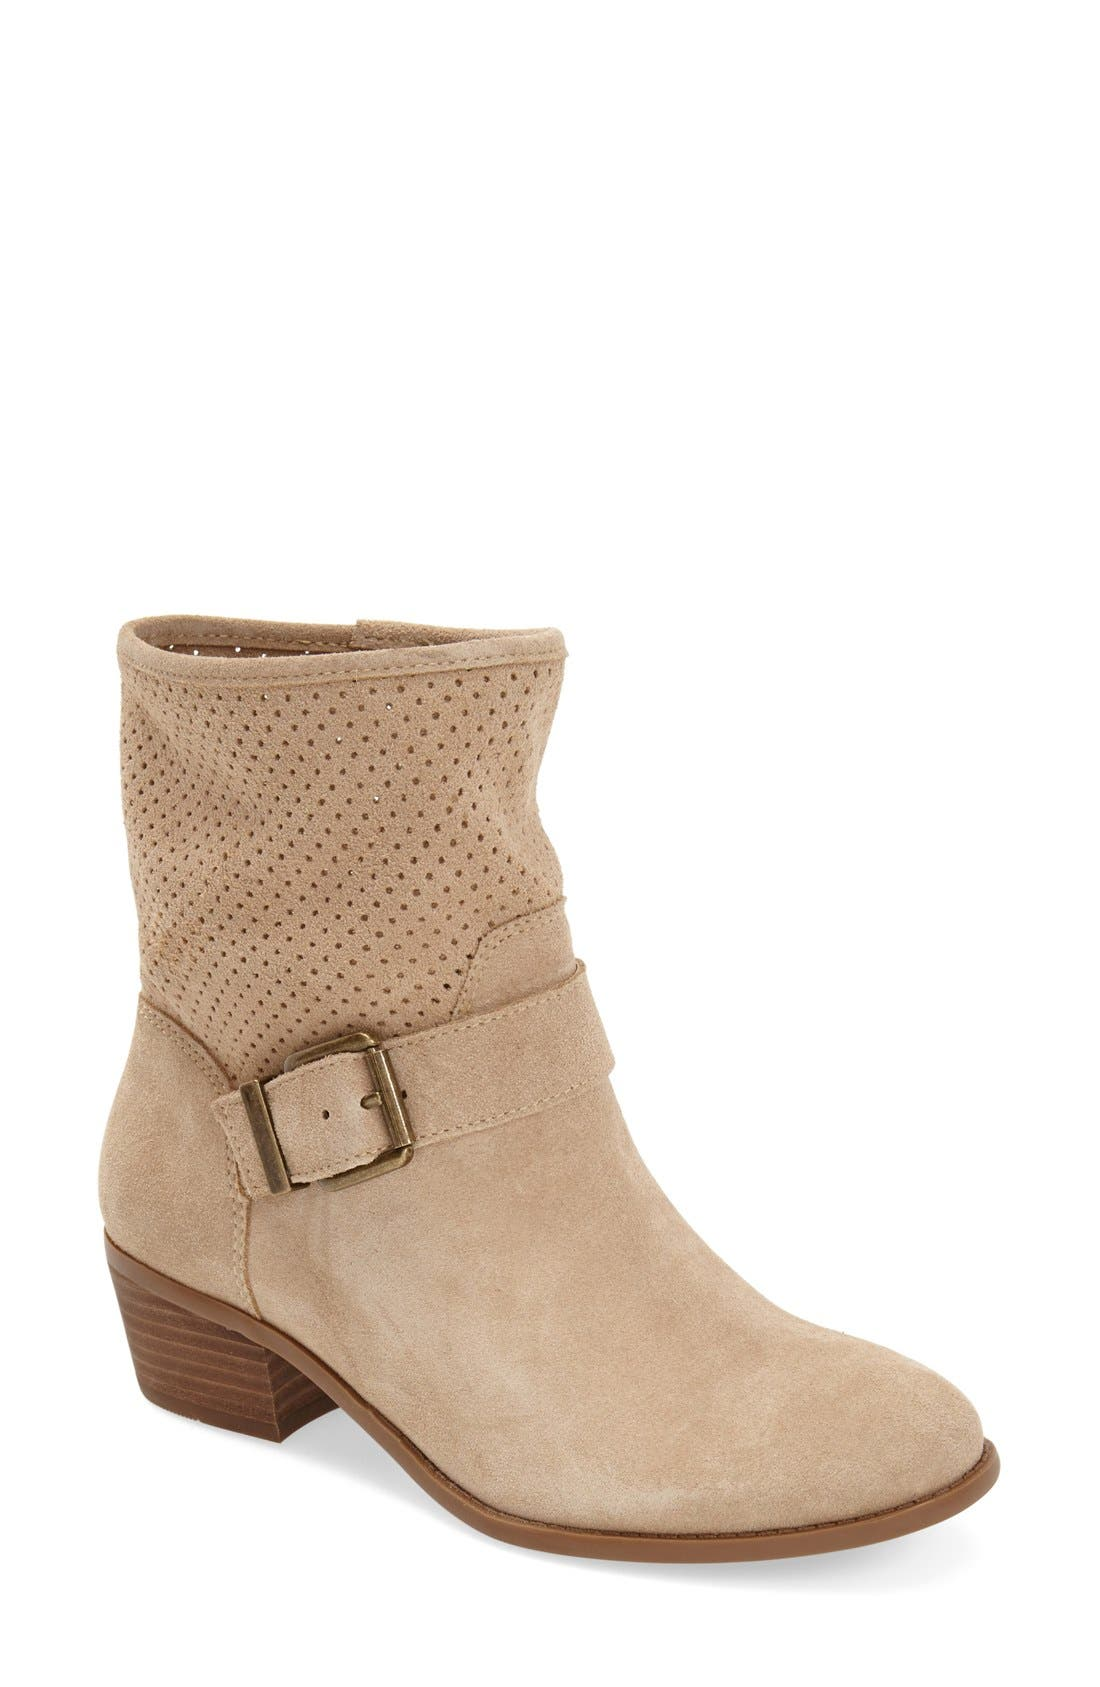 Alternate Image 1 Selected - Sole Society 'Sola' Perforated Suede Western Bootie (Women)